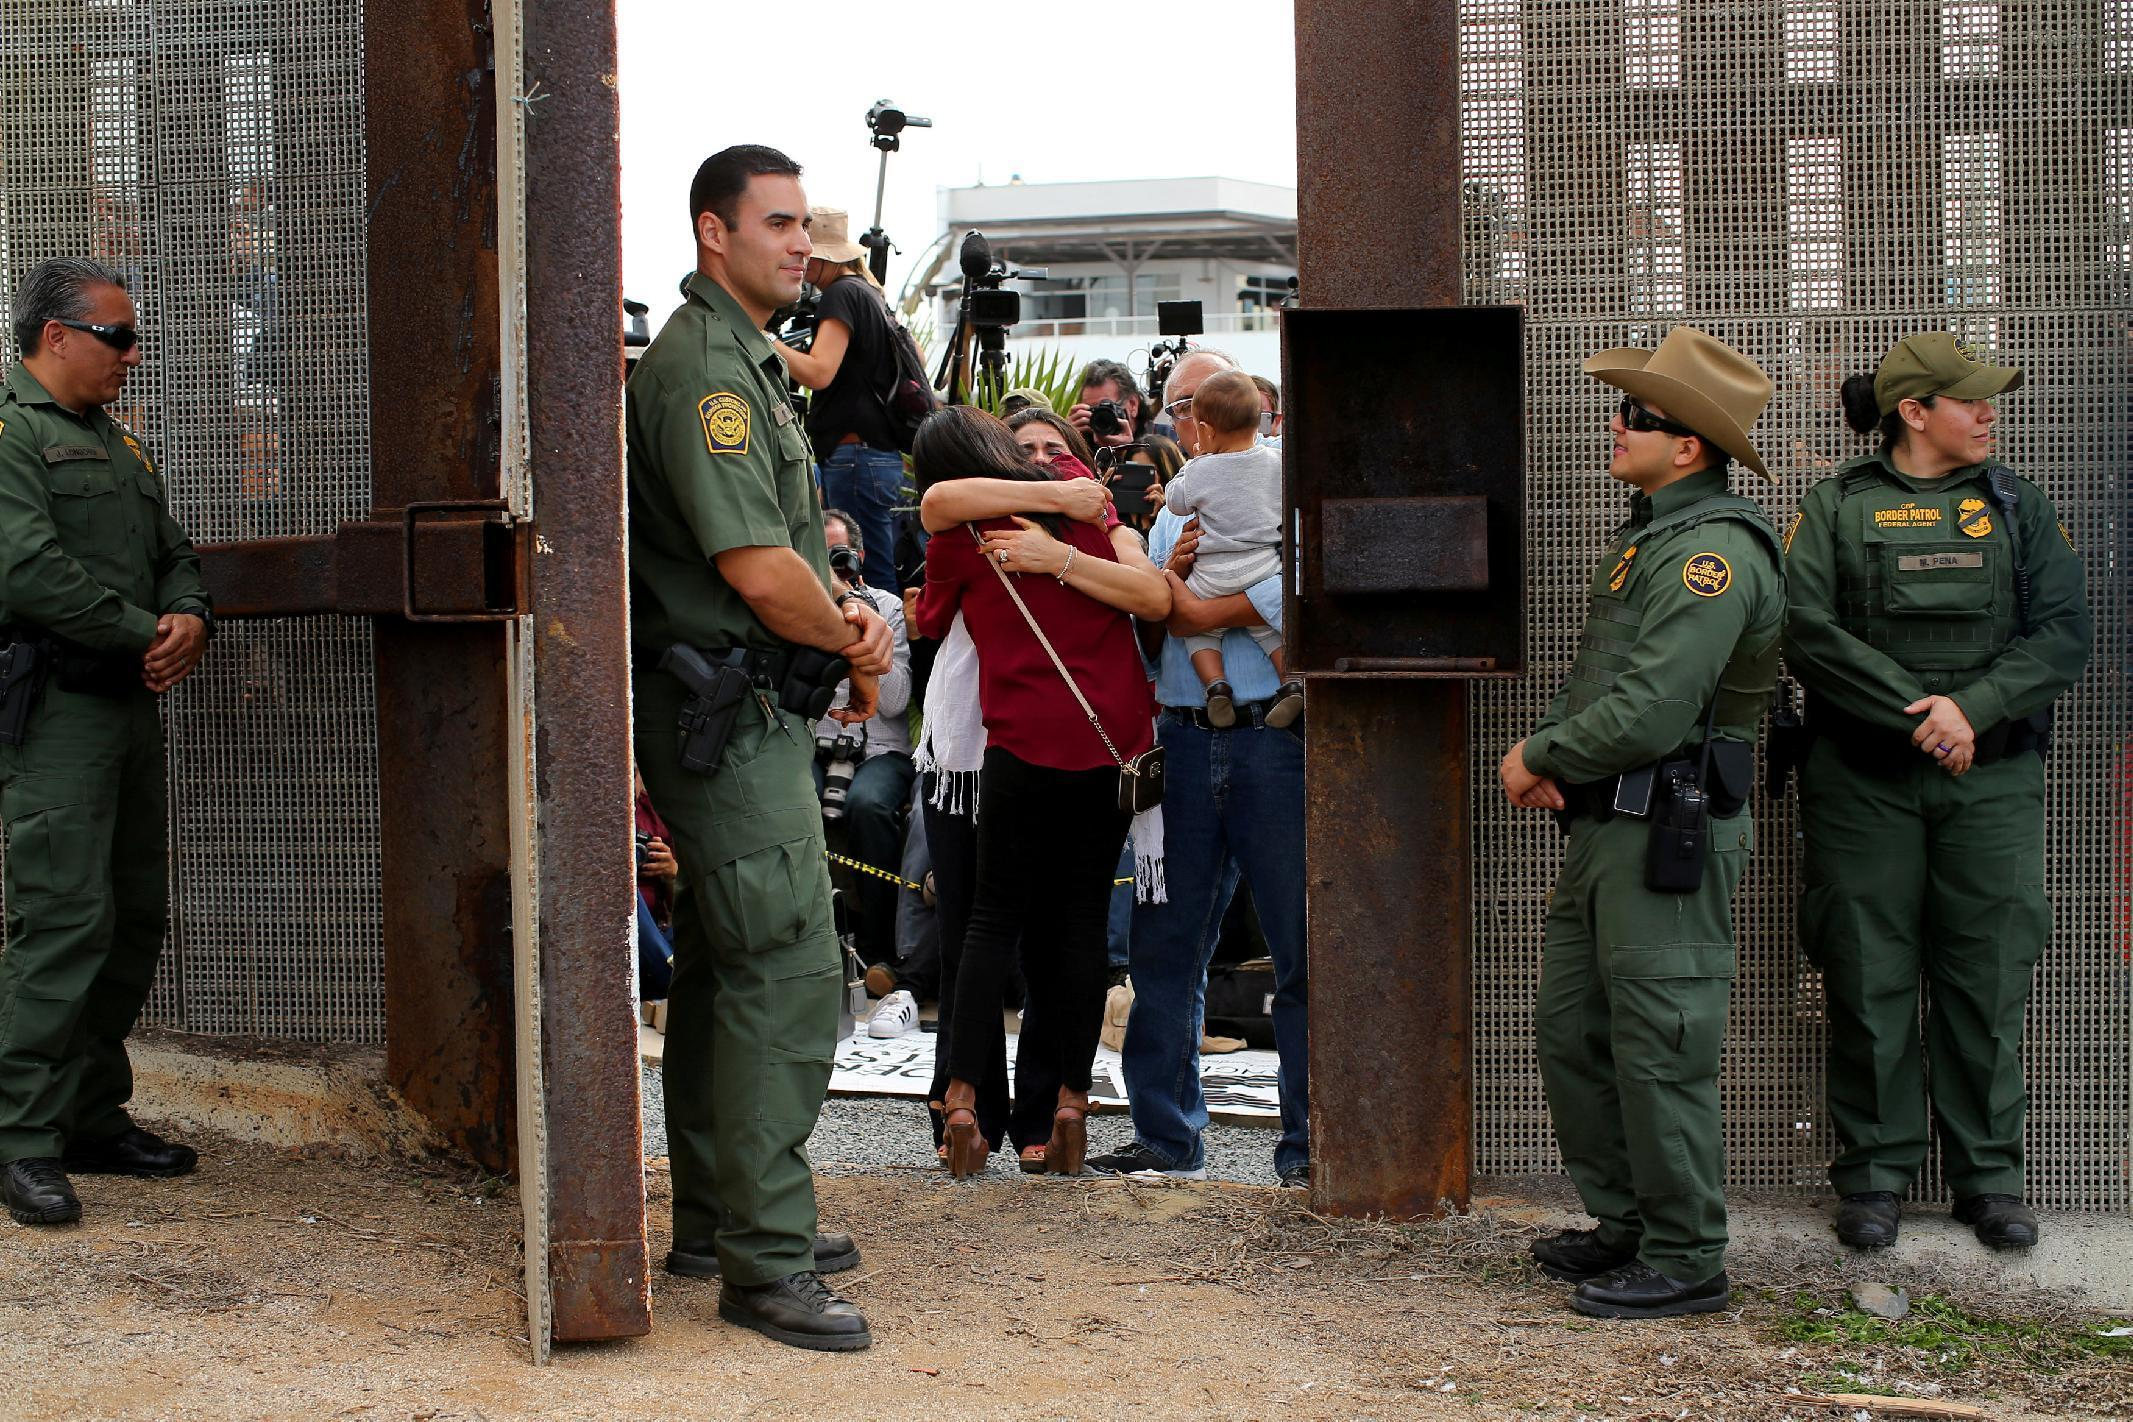 FILE PHOTO - U.S. Border patrol agents stand watch at an open gate on the fence along the Mexico border to allow Delia Valdovinos-Sanchez to embrace Ramona Vargas, as part of Universal Children's Day at the Border Field State Park, California, U.S. on November 19, 2016. REUTERS/Mike Blake/File Photo